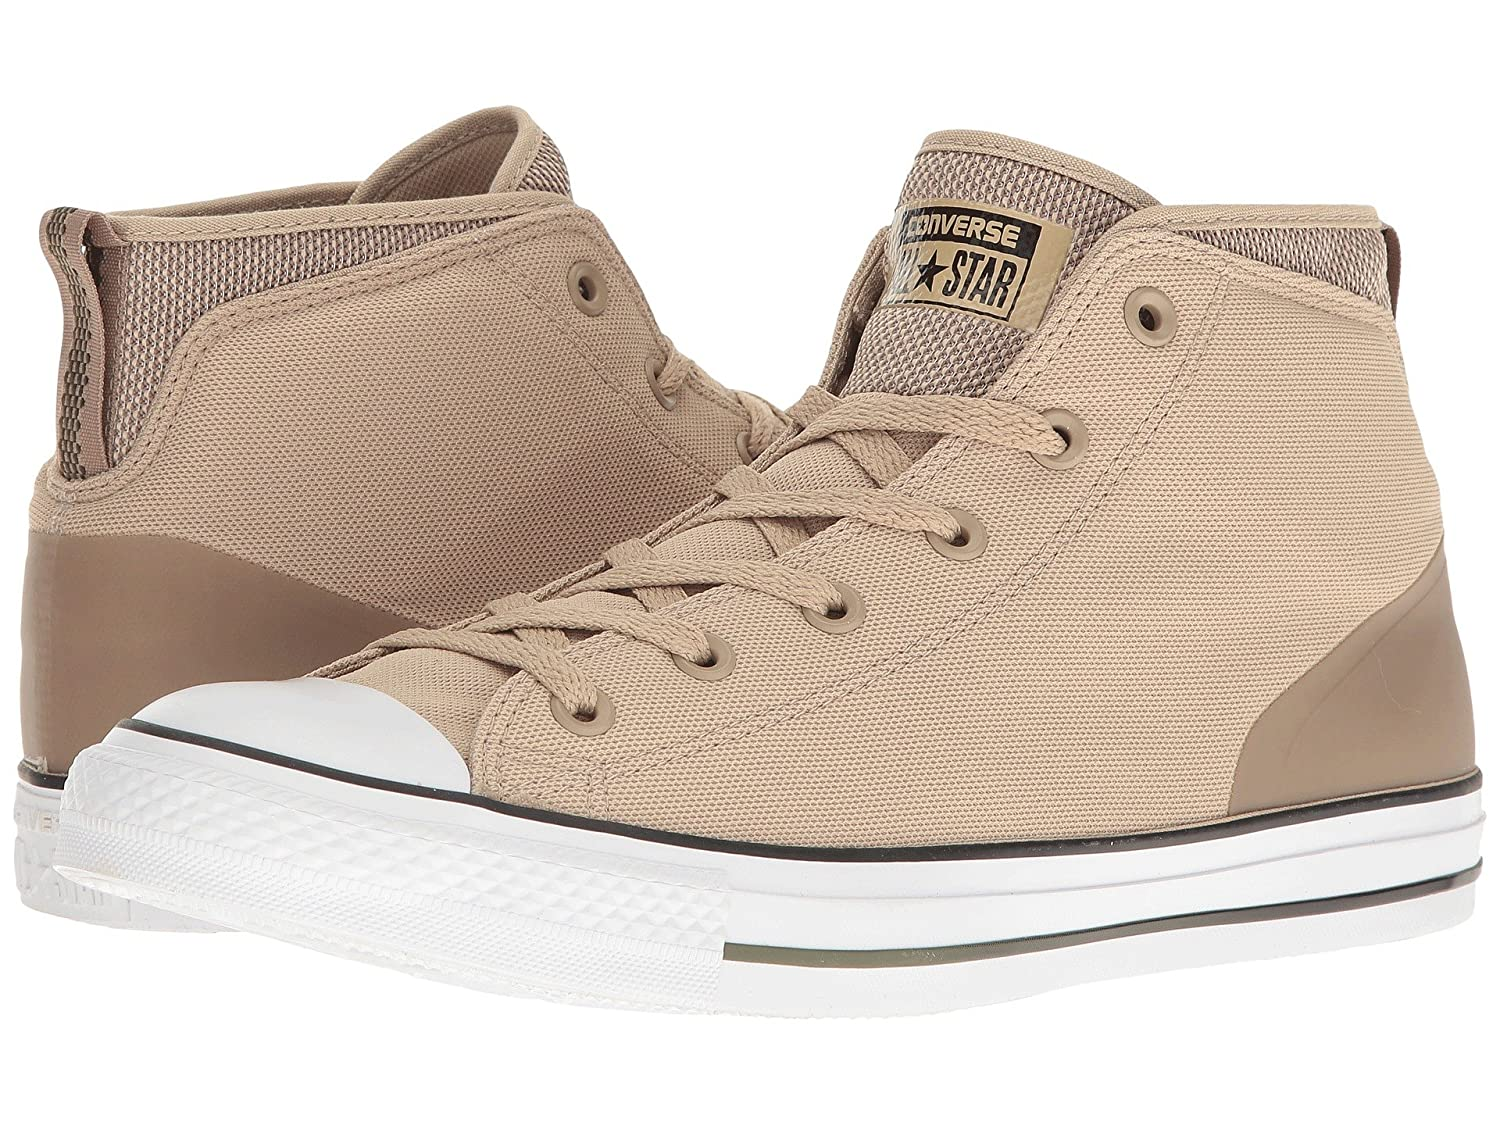 Converse Chuck Taylor All Star Suede Street Mid Men's Vintage KhakiMaltHerbal 155482C (7.5 D(M) US)